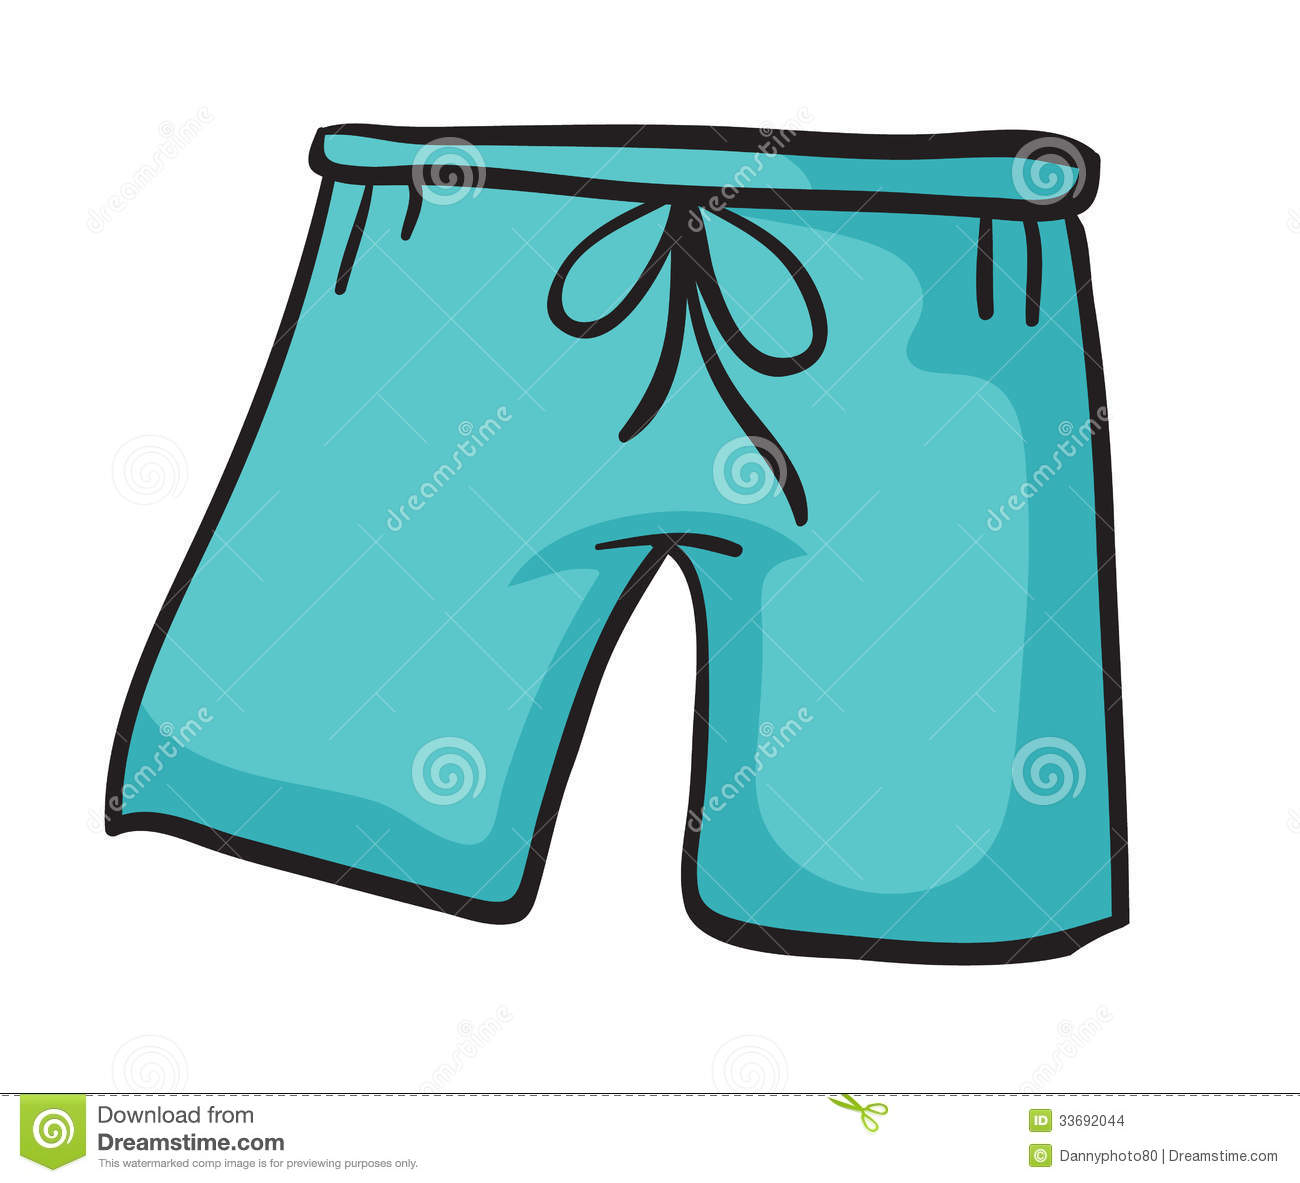 Illustration of a blue pant on a white background.